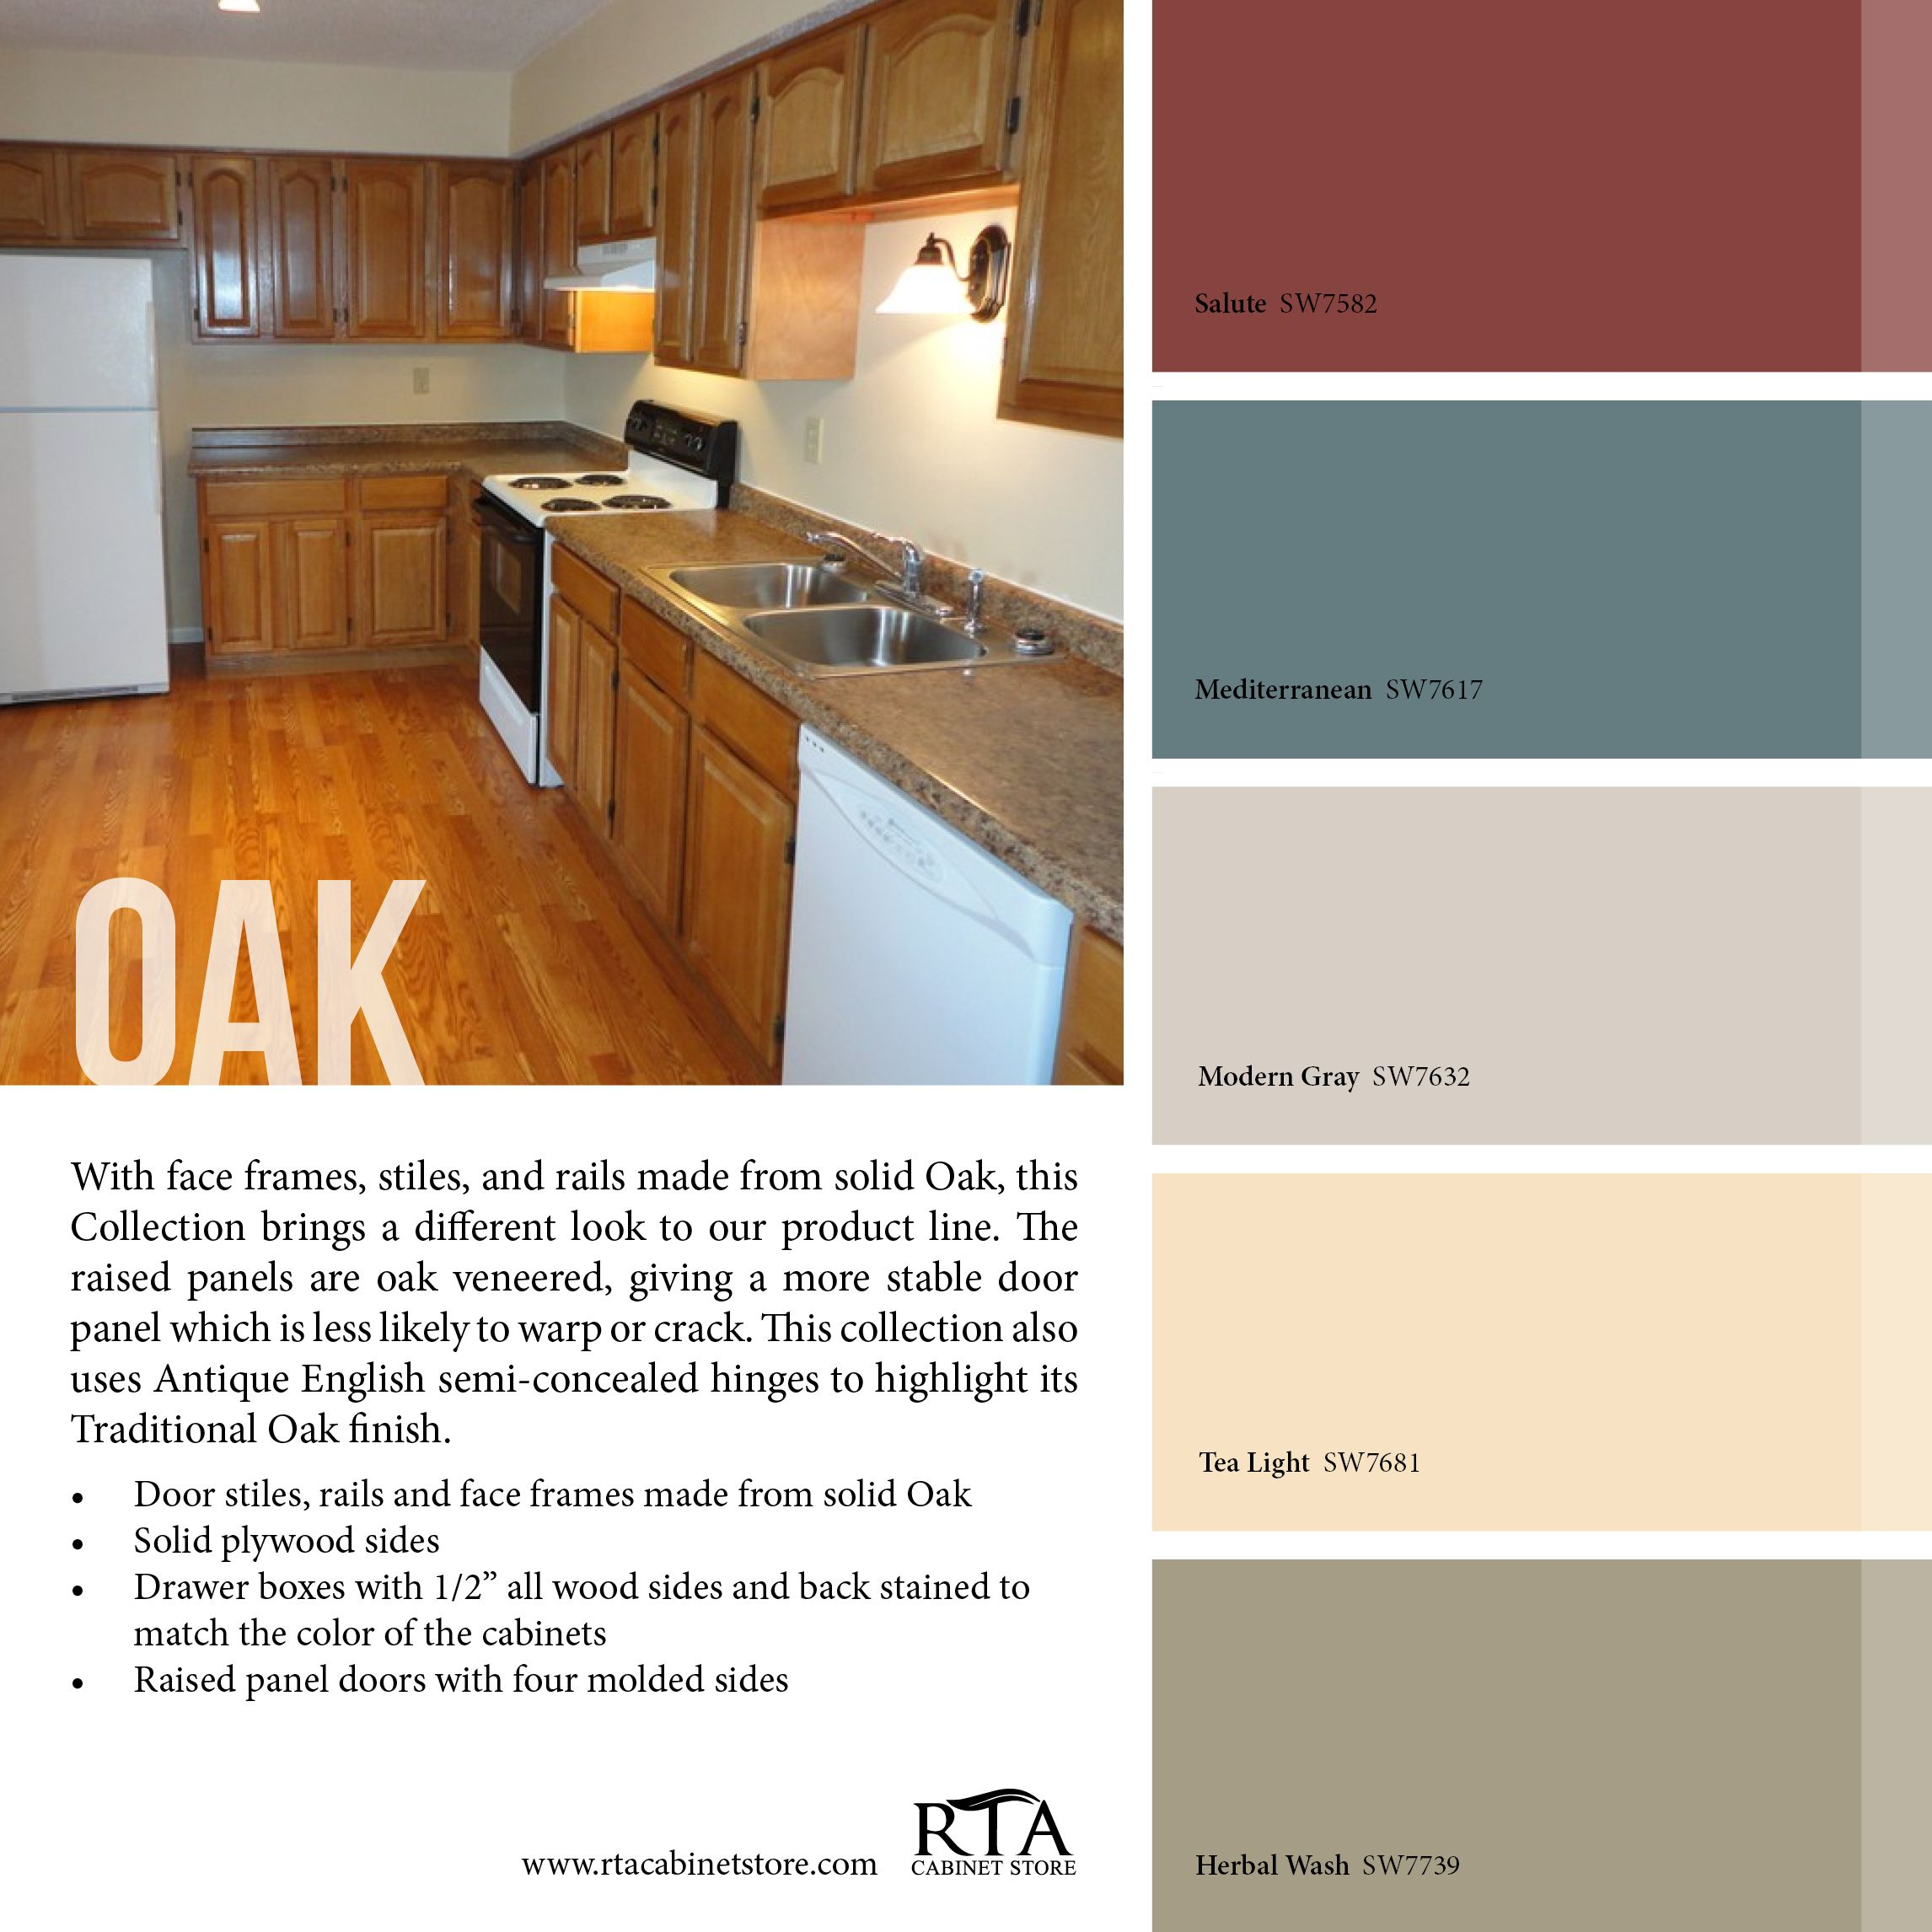 Painting golden oak cabinets - Since We Have Been Looking At Buying A Home Lately We See So Many Kitchens With Painted Cabinets Take It From An Interior Designer This Is The Right Way